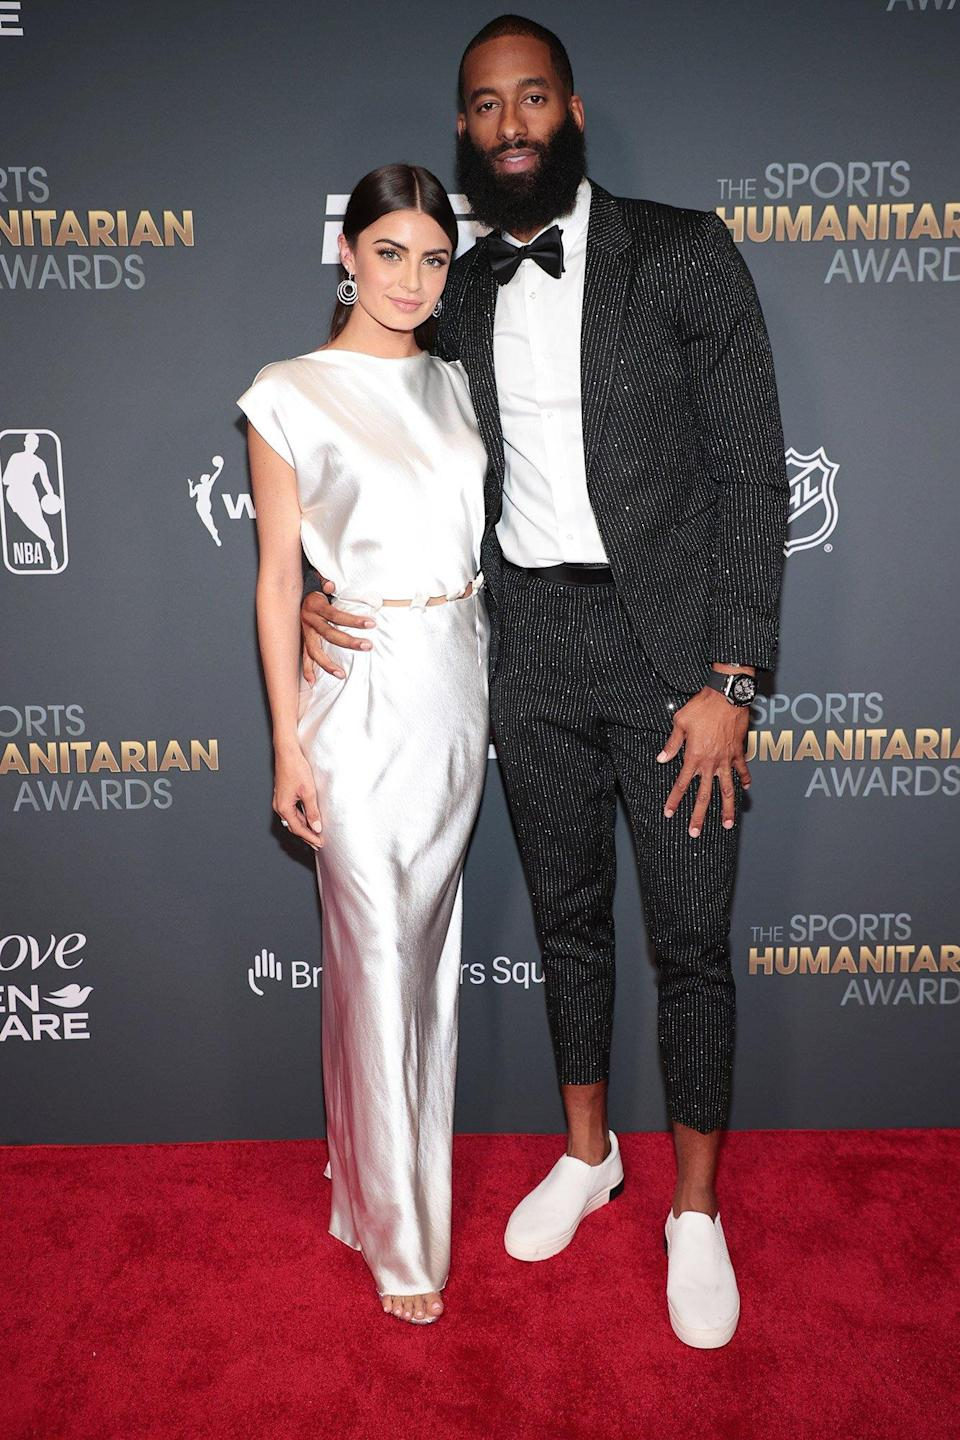 Rachael Kirkconnell and Matt James attend the 2021 Sports Humanitarian Awards on July 12, 2021 in New York City